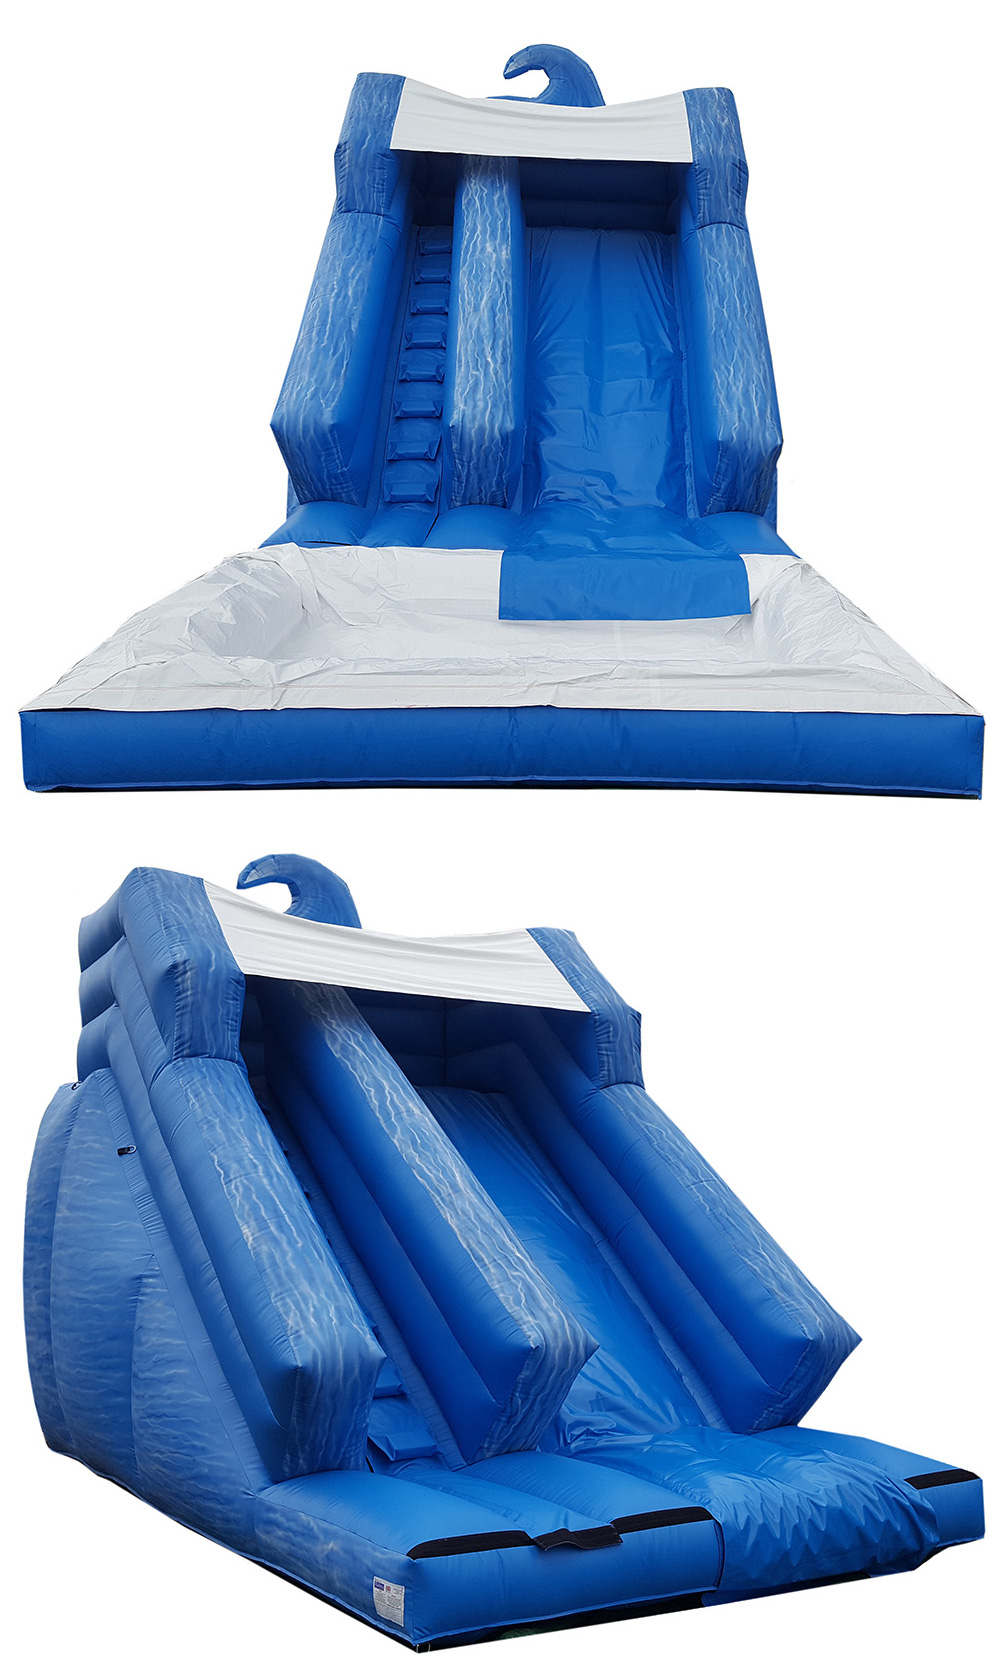 Bouncy Castle Sales - BC525 - Bouncy Inflatable for sale